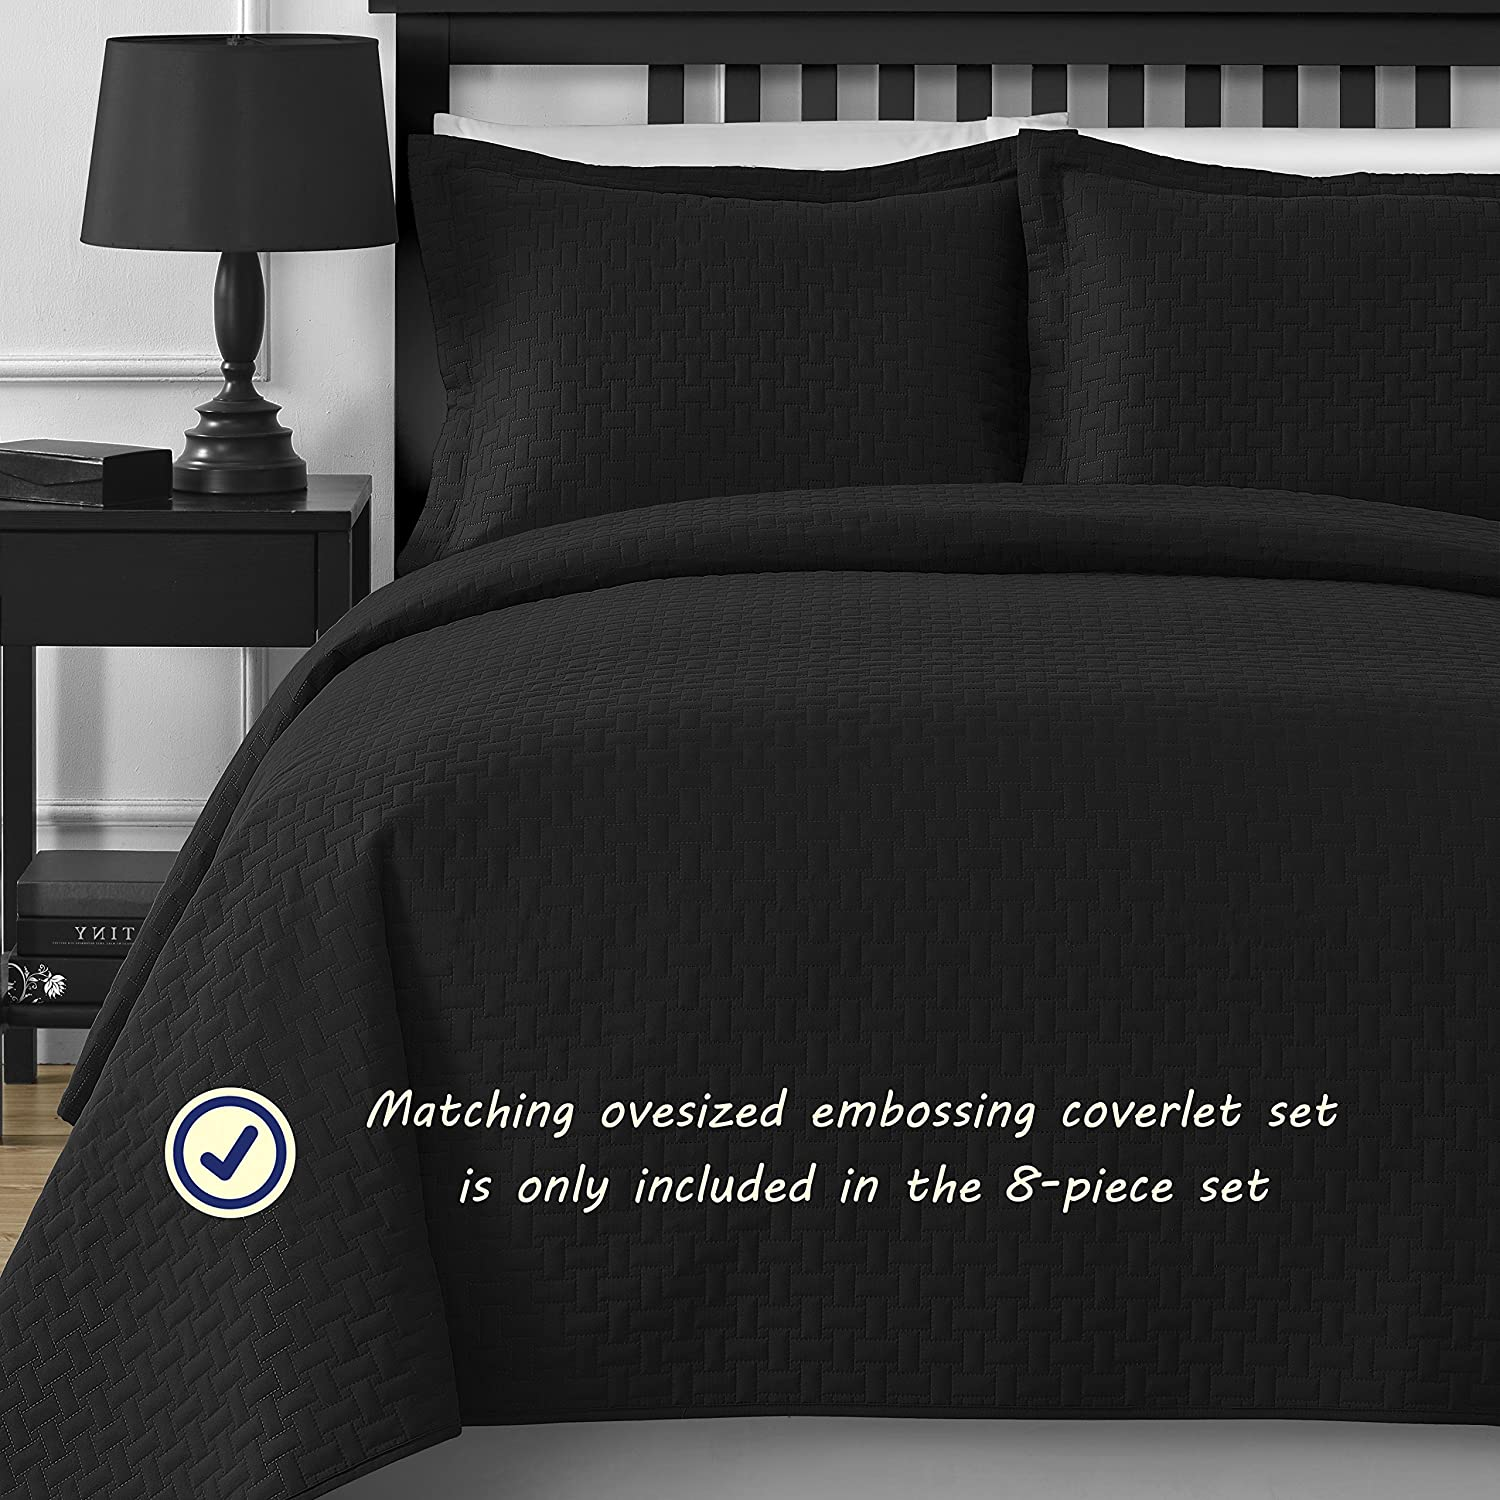 Comfy Bedding Frame Jacquard Microfiber King 5-piece Comforter Set, Black